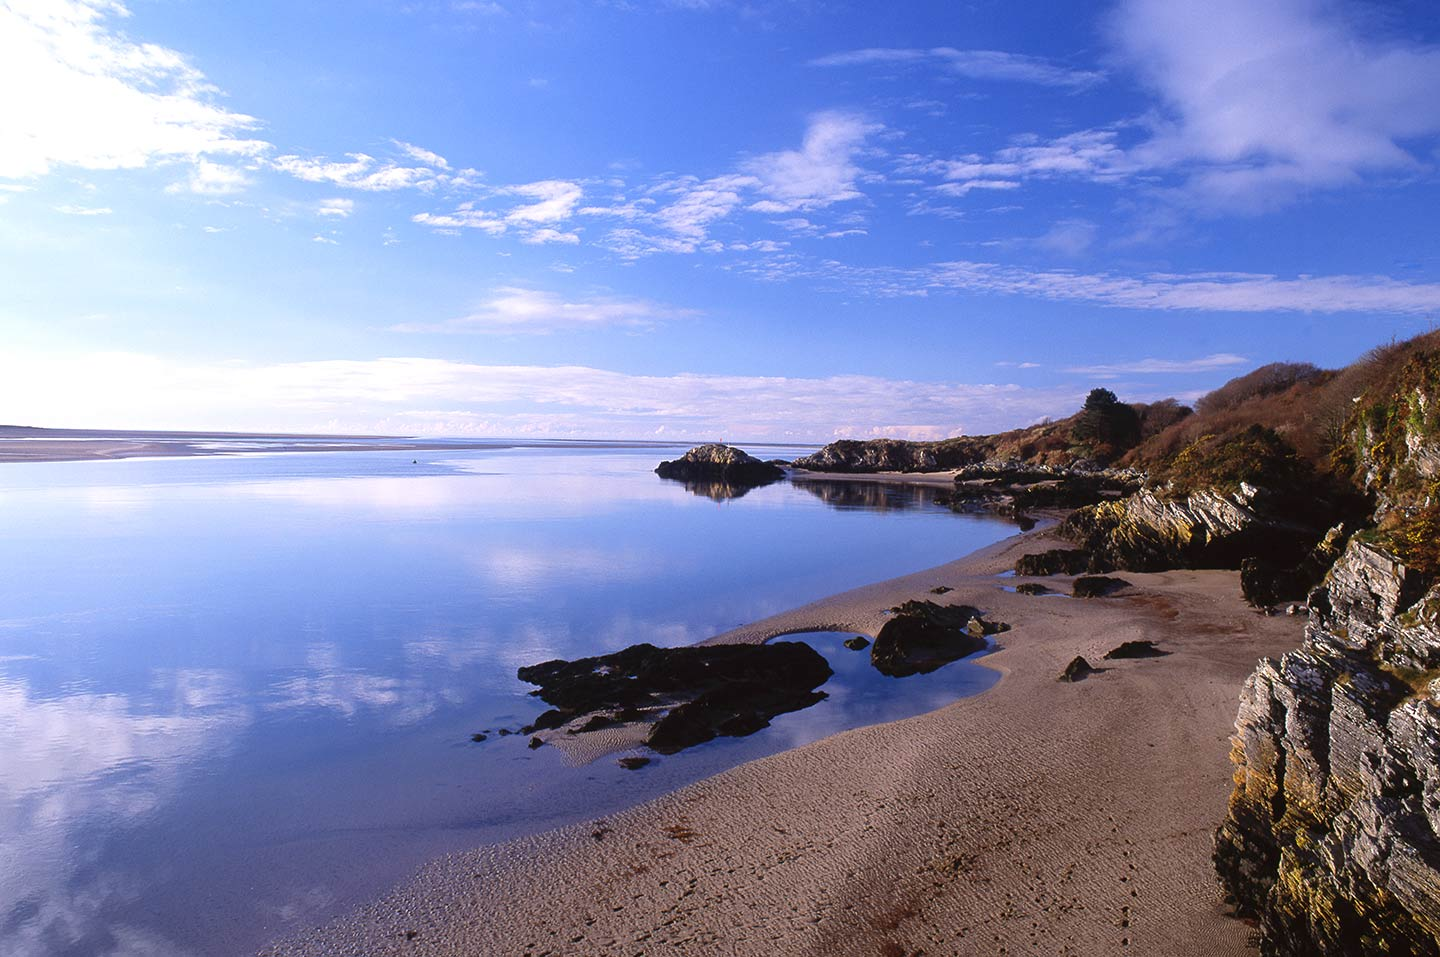 Image of a beach on the Glaslyn estuary